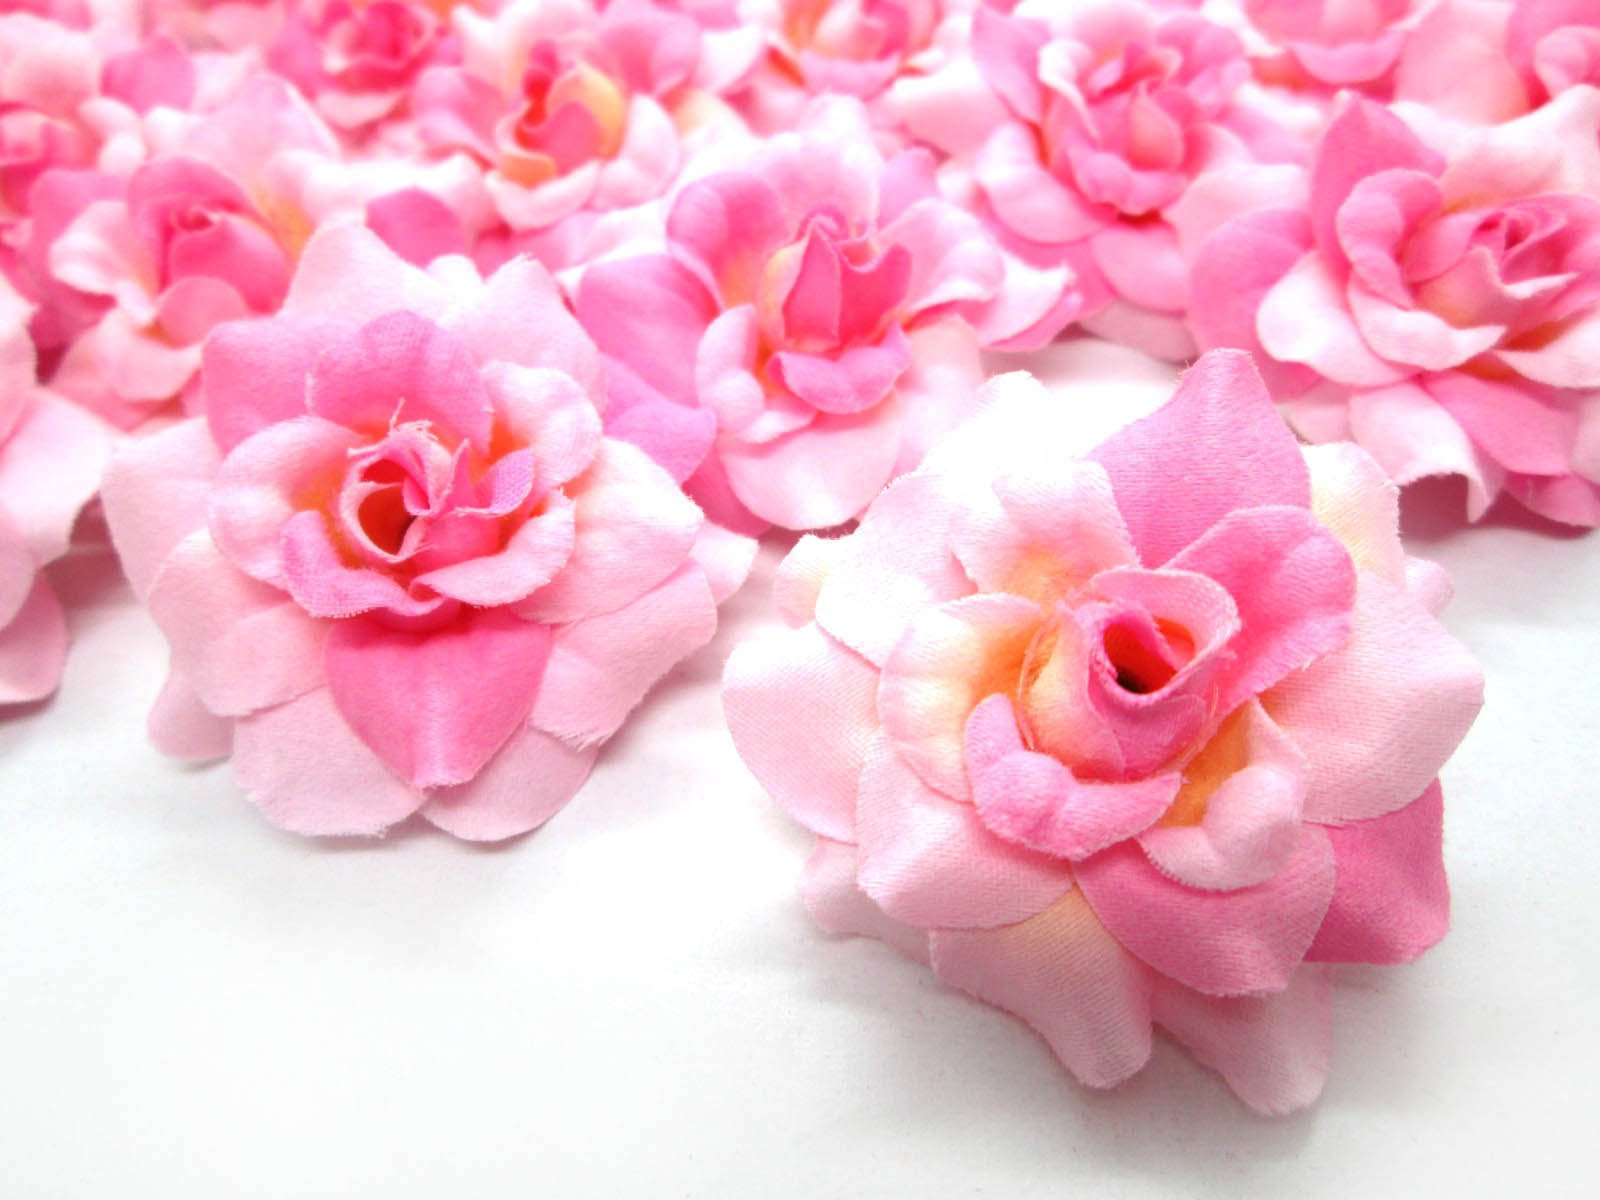 24-Silk-Two-tone-Light-Pink-Roses-Flower-Head-175-Artificial-Flowers-Heads-Fabric-Floral-Supplies-Wholesale-Lot-for-Wedding-Flowers-Accessories-Make-Bridal-Hair-Clips-Headbands-Dress